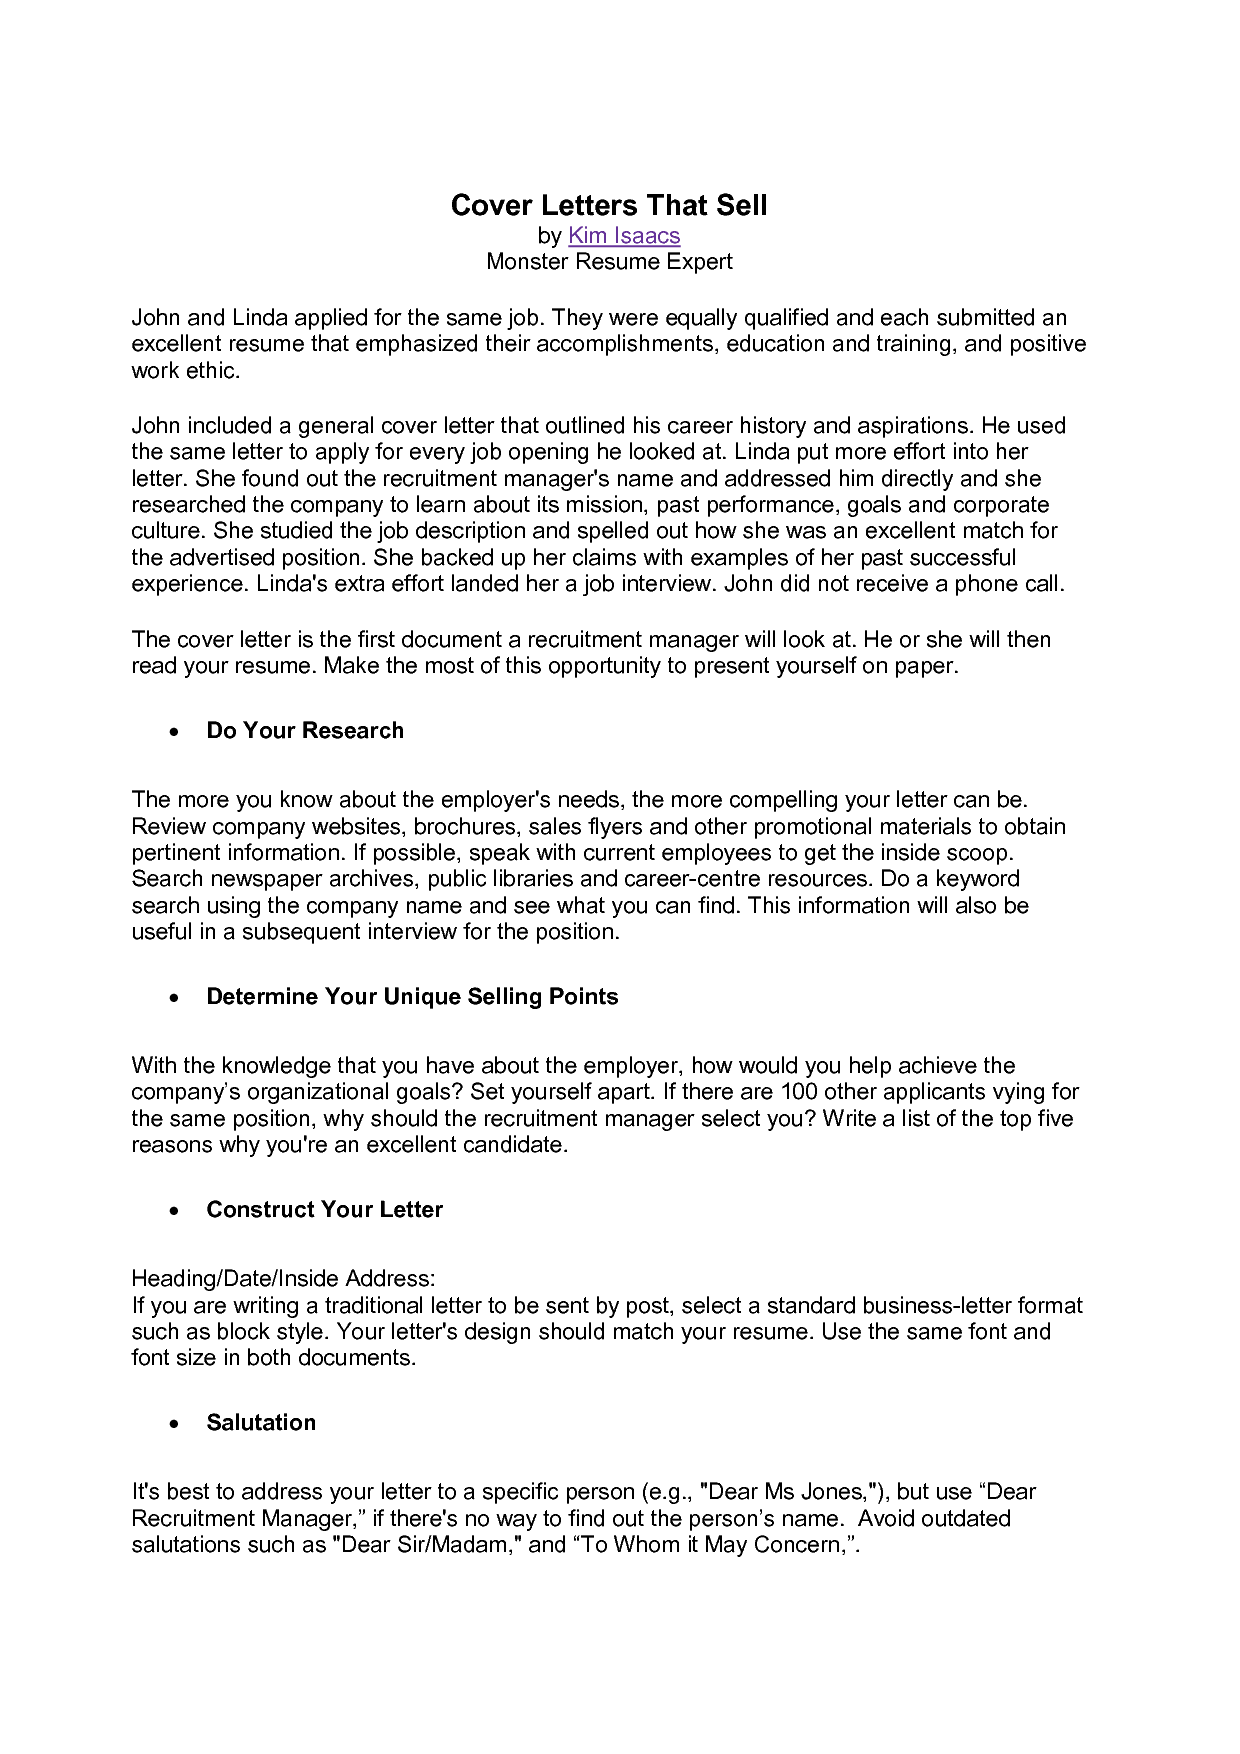 monster jobs cover letter - Sample Cover Letter Monster